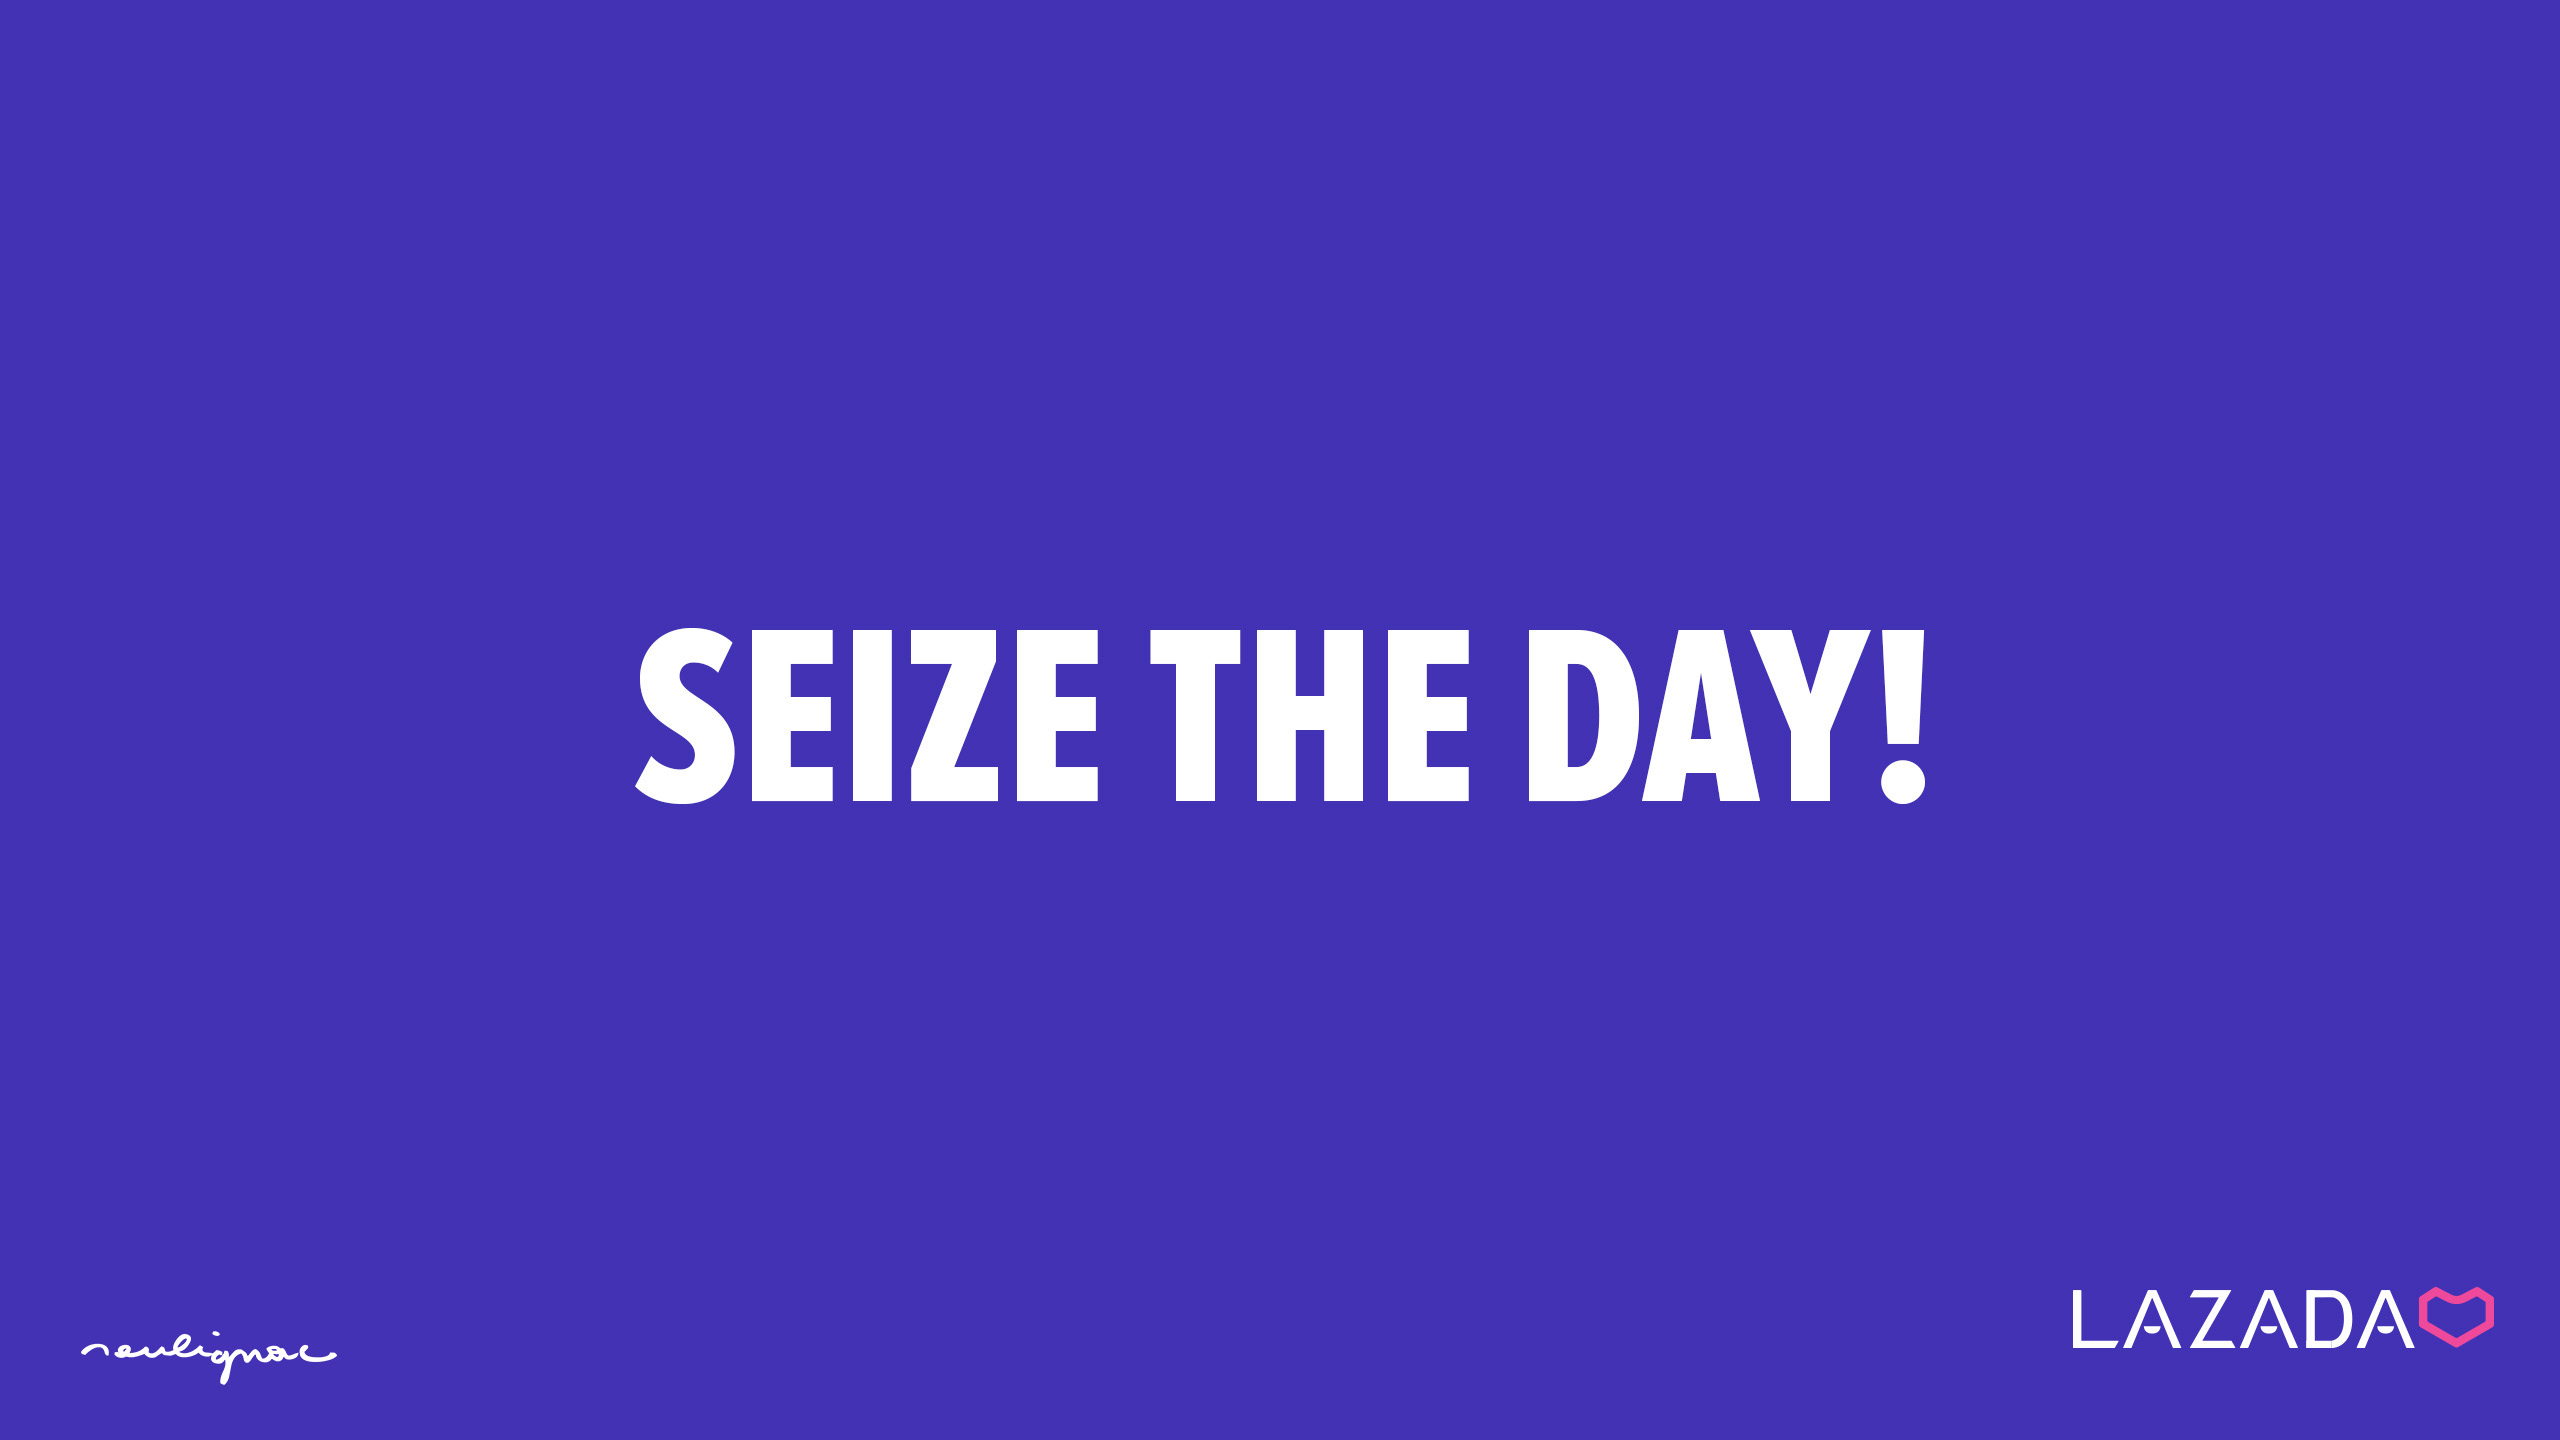 LAZADA Group - Digital Campaign - SEIZE THE DAY - Francois Soulignac - Digital Creative & Art Director - MADJOR Labbrand Shanghai